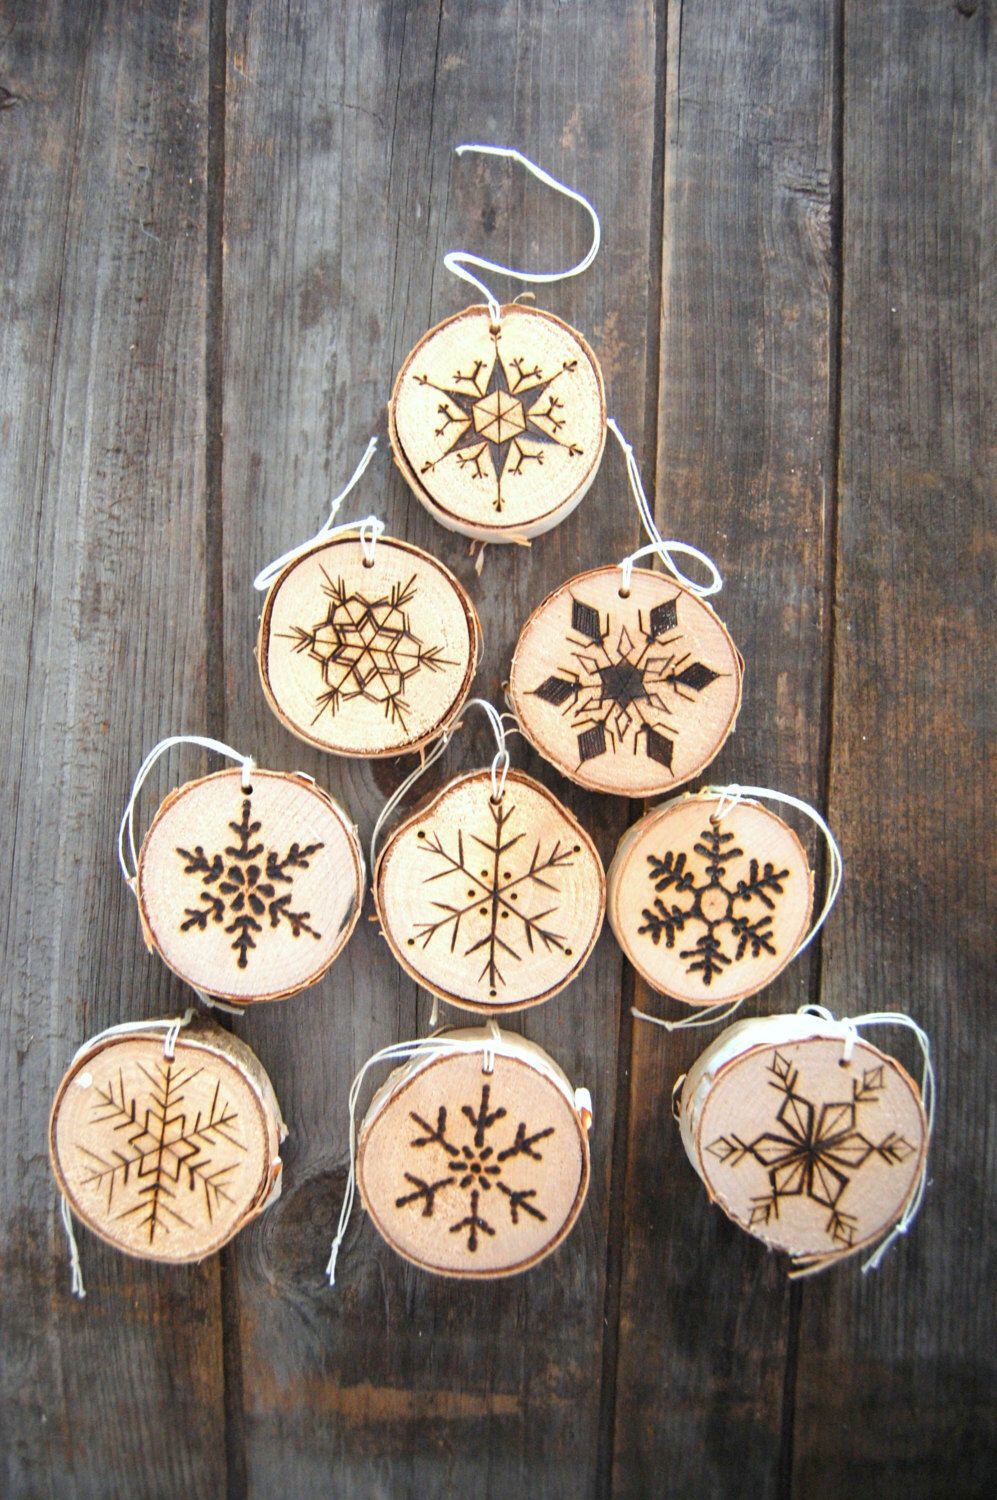 Rustic Christmas Ornaments Fa La La La La Wood Slice Ornament Christmas Ornament